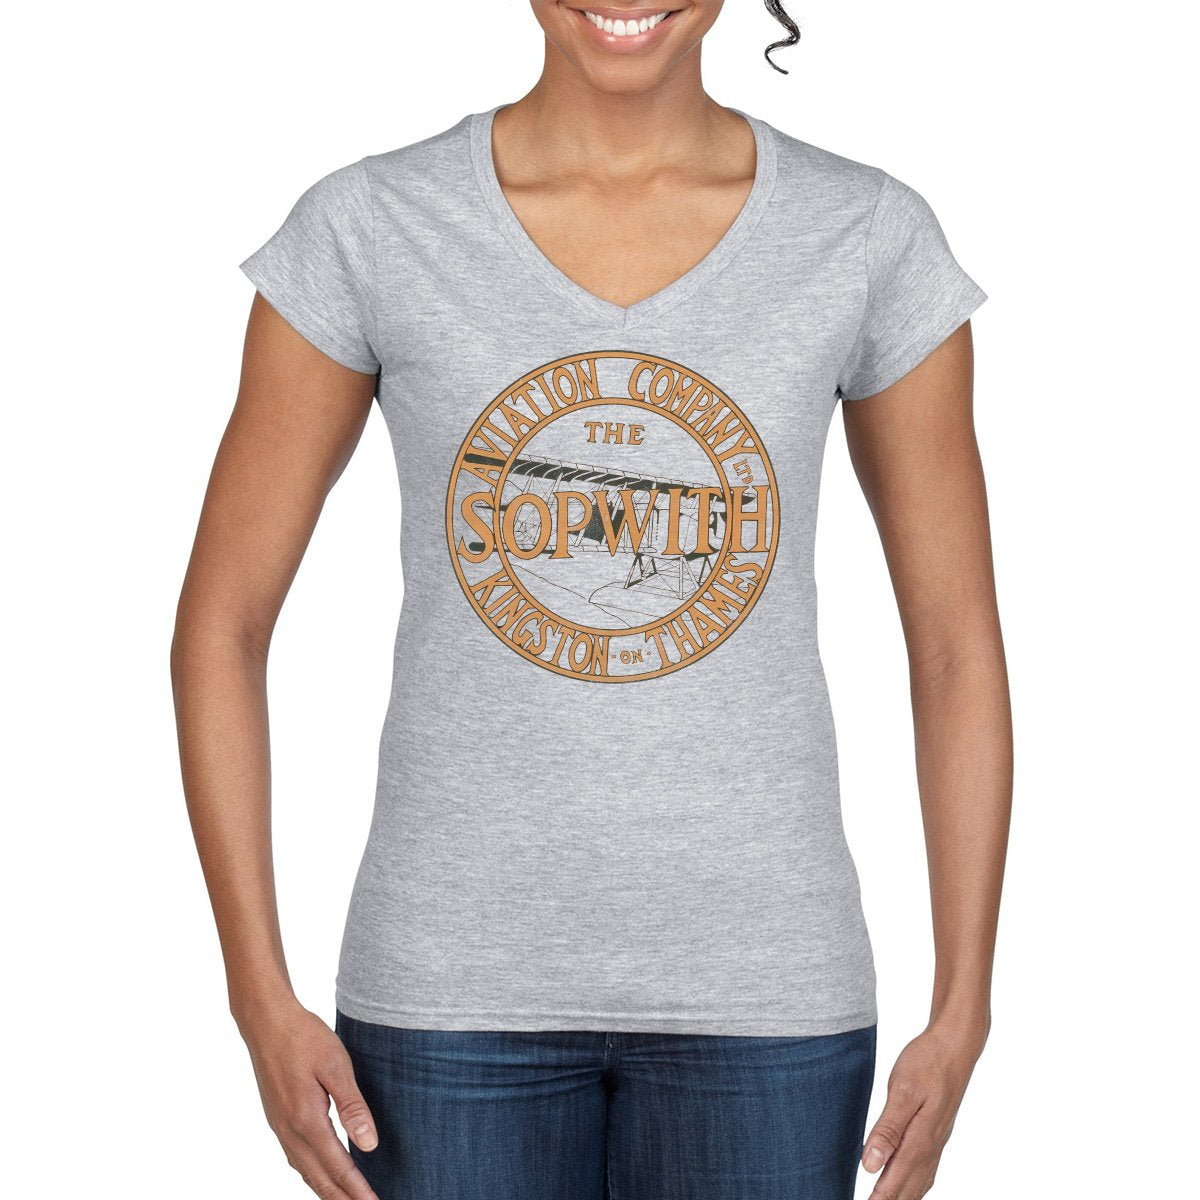 SOPWITH AVIATION COMPANY Semi-Fitted T-Shirt